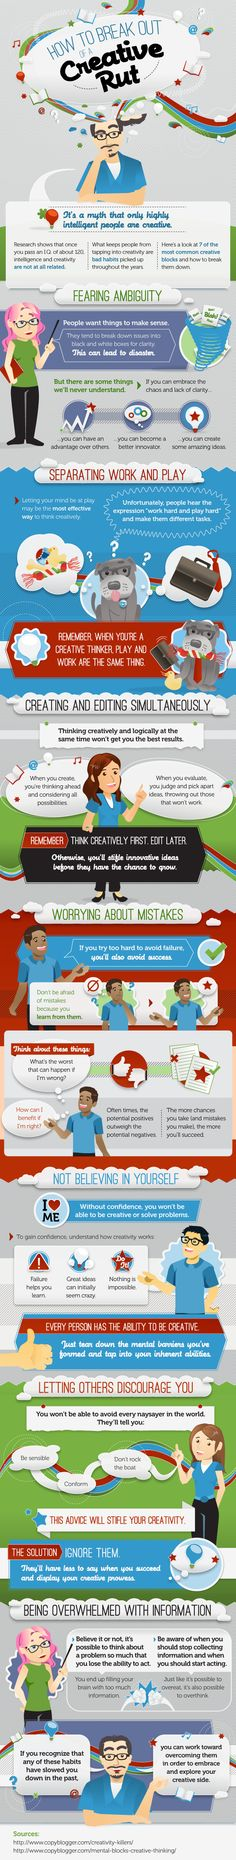 How To Break Out Of A Creative Rut[INFOGRAPHIC]